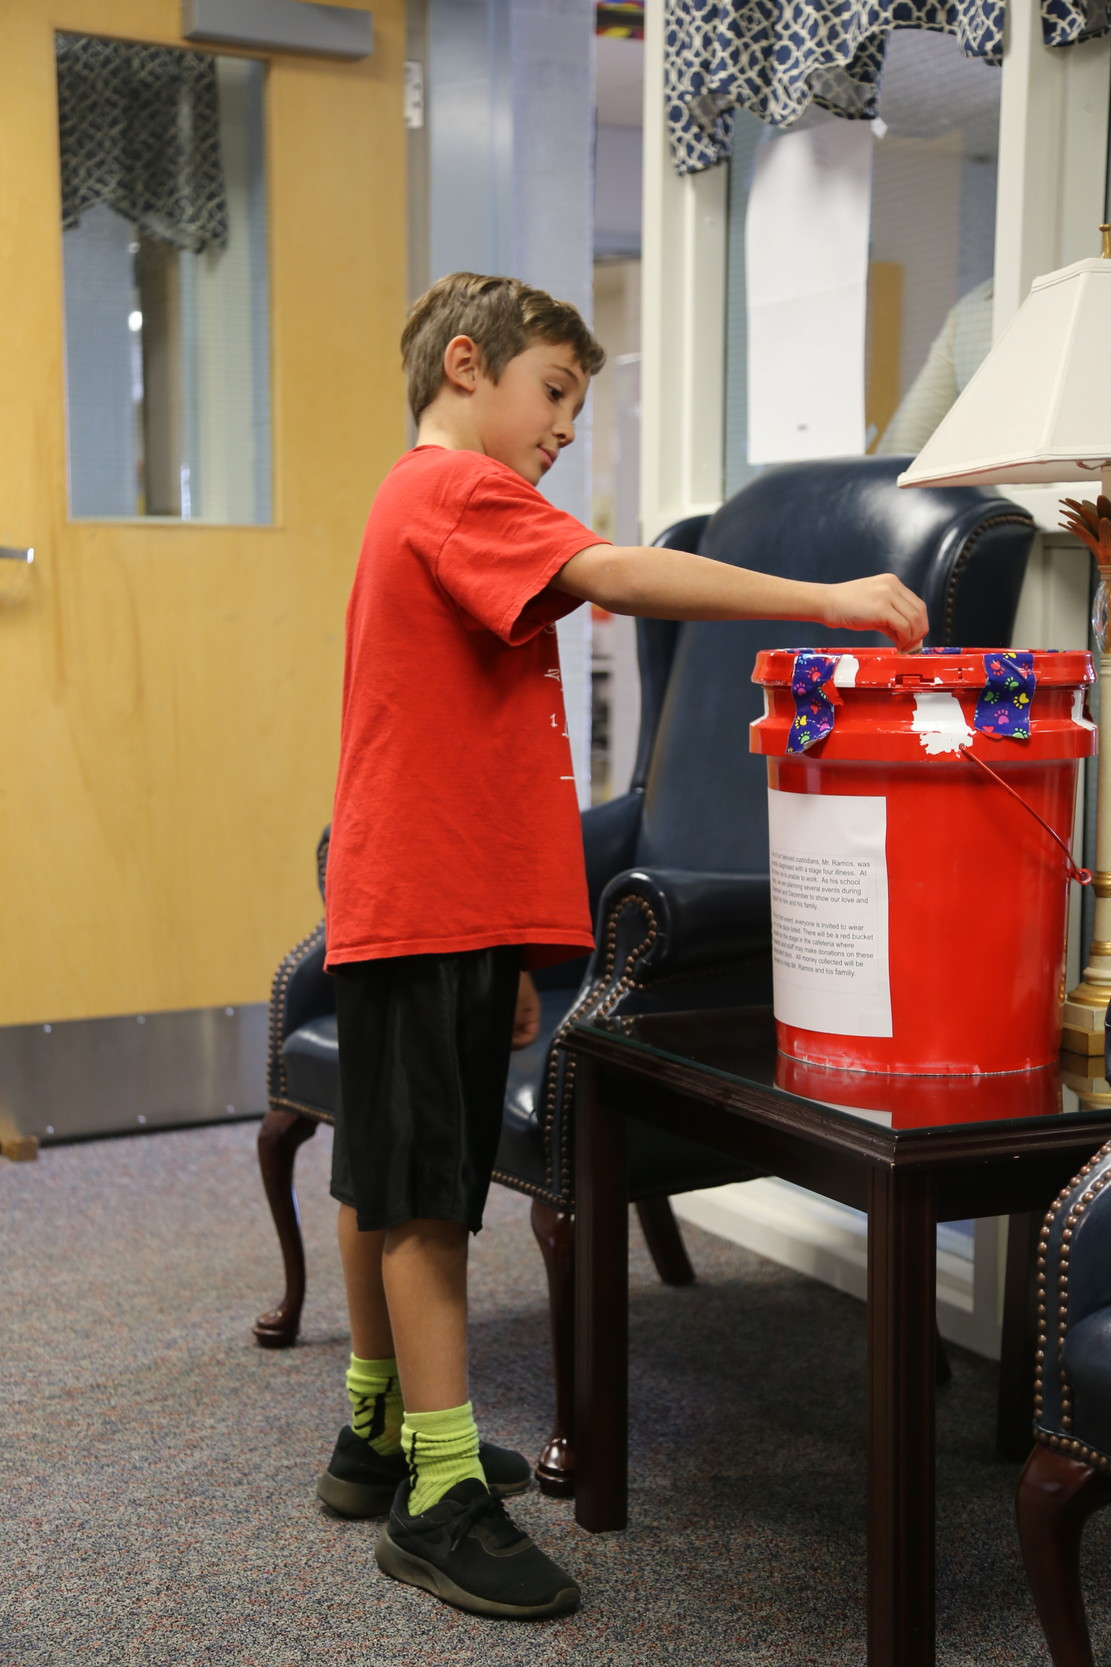 Shaw Heights Elementary School student Ryan Cline donates a dollar bill on Tuesday into a bucket at the school designated for offerings to school custodian Daniel Ramos.